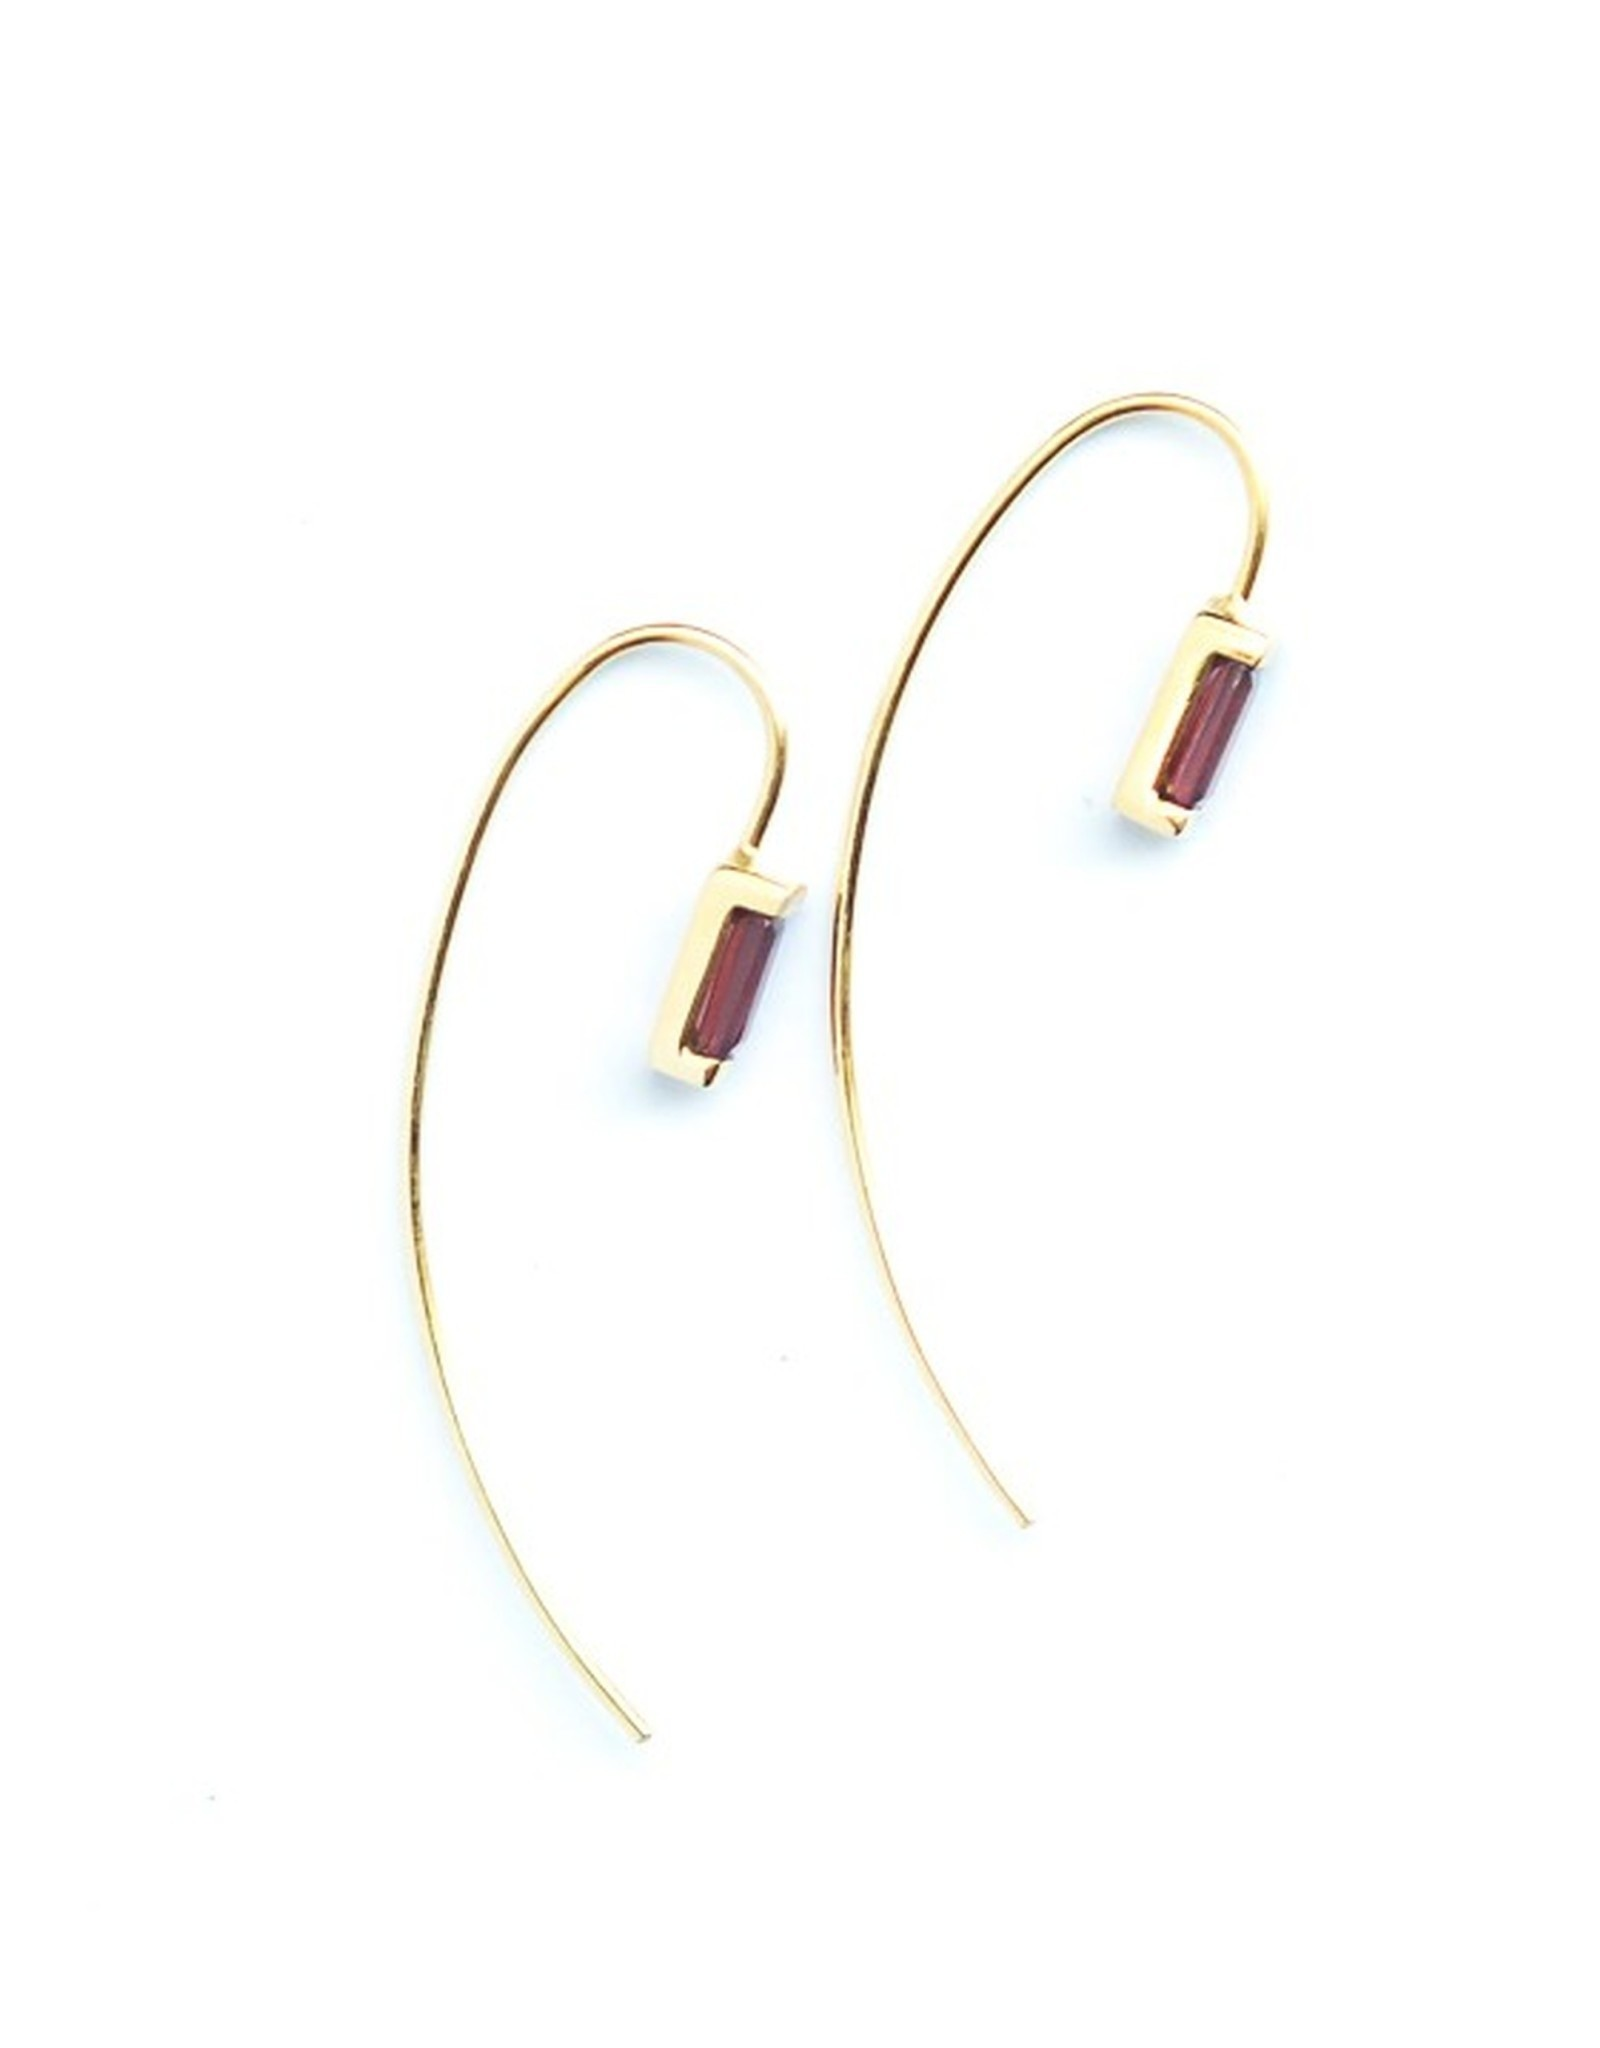 Fair Anita Prism Gold Earrings with Garnet